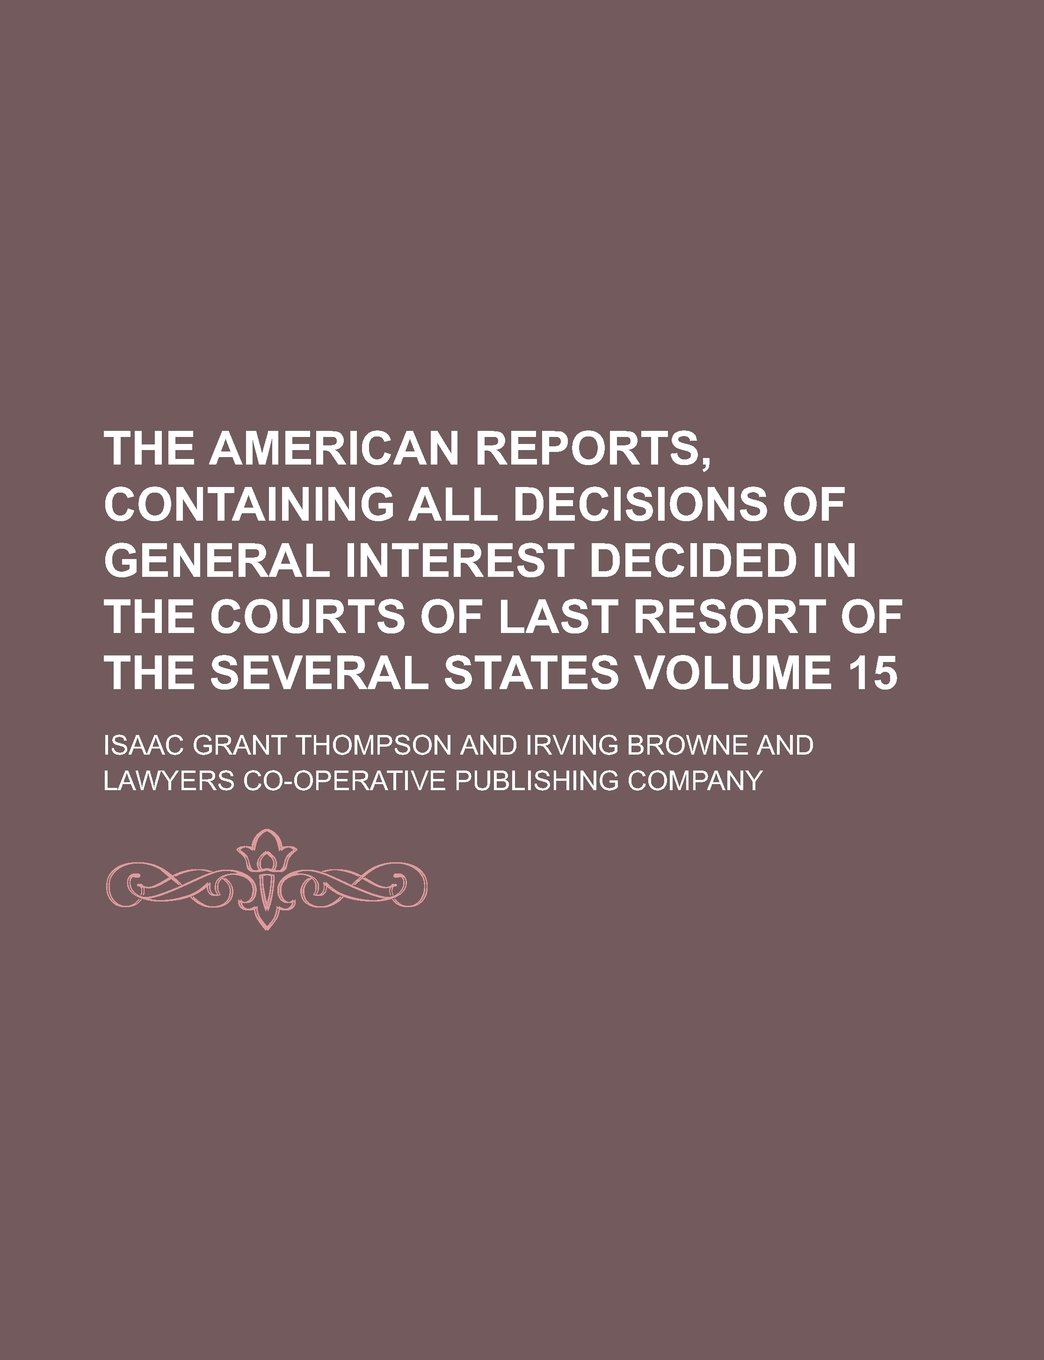 Read Online The American Reports, Containing All Decisions of General Interest Decided in the Courts of Last Resort of the Several States Volume 15 PDF